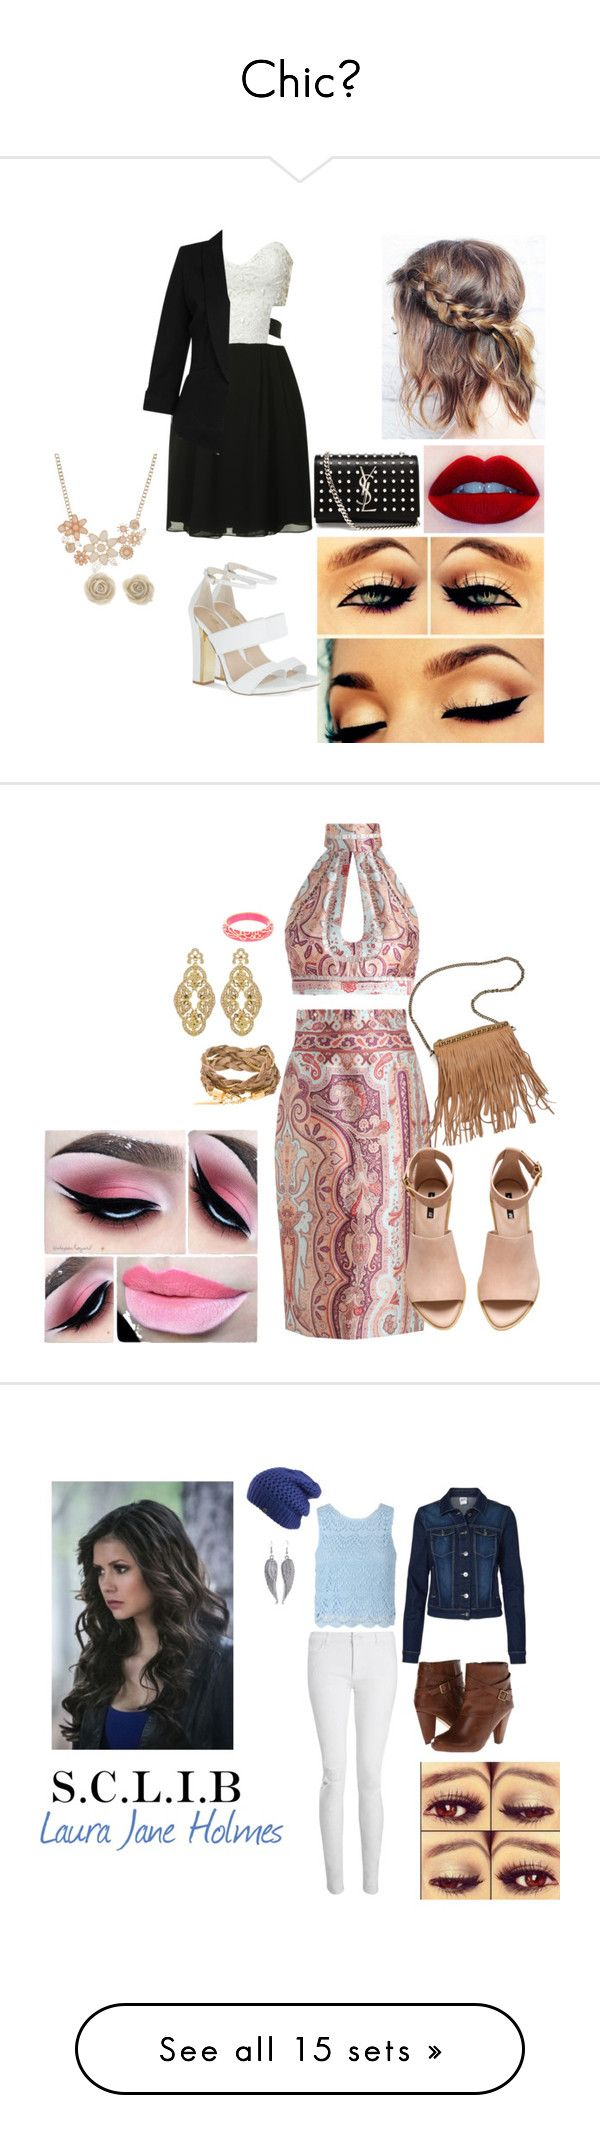 """""""Chicღ"""" by love666x on Polyvore featuring arte, Summer, chic, summerstyle, chicstyle, fanfiction, Capitulo05, sclib, LauraJaneHolmes y TinaHillary"""